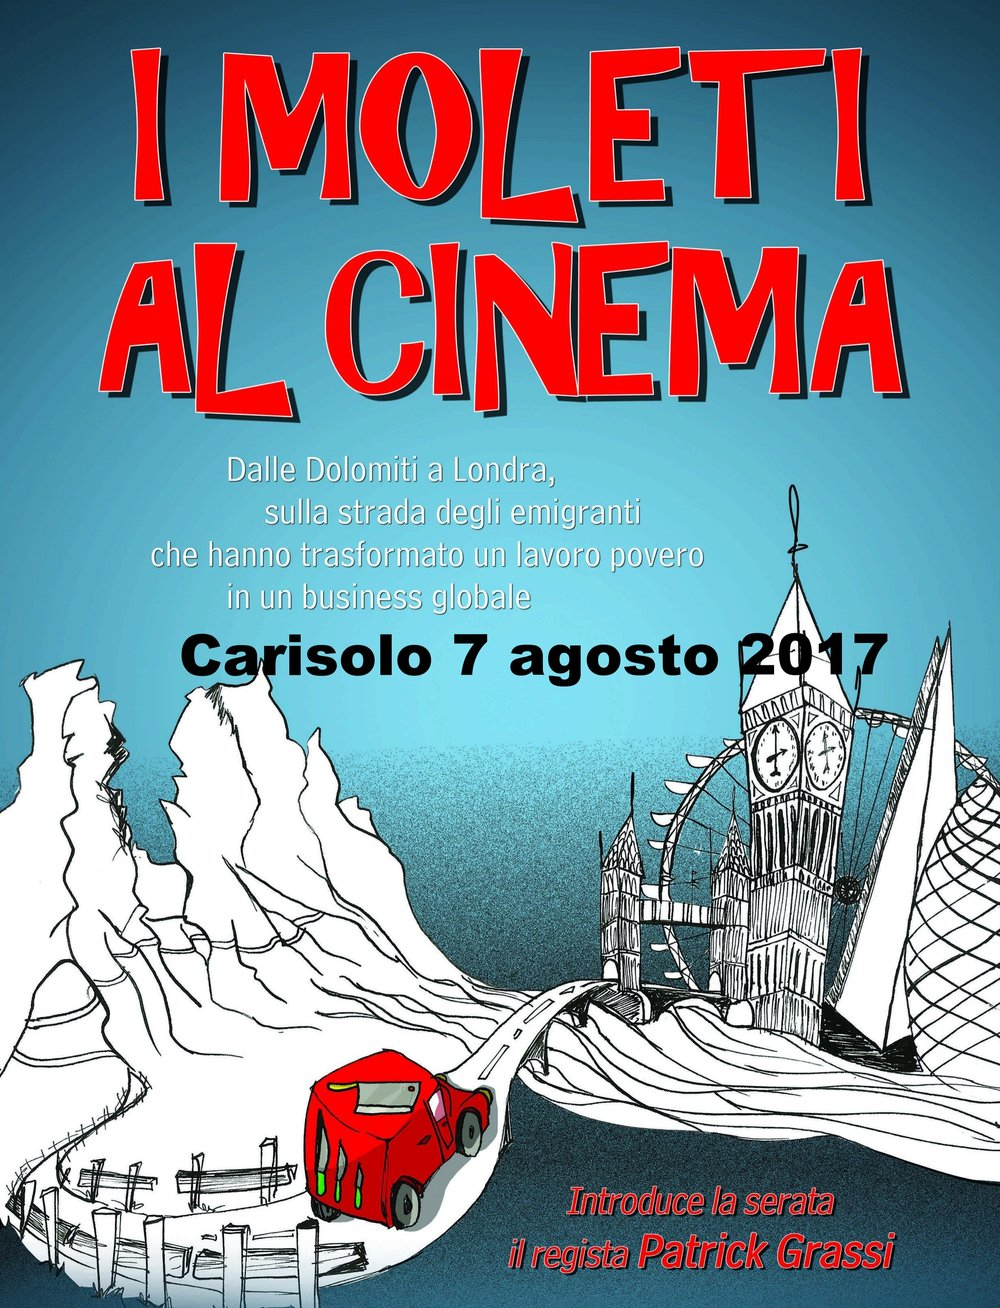 I MOLETI AL CINEMA_low.jpg